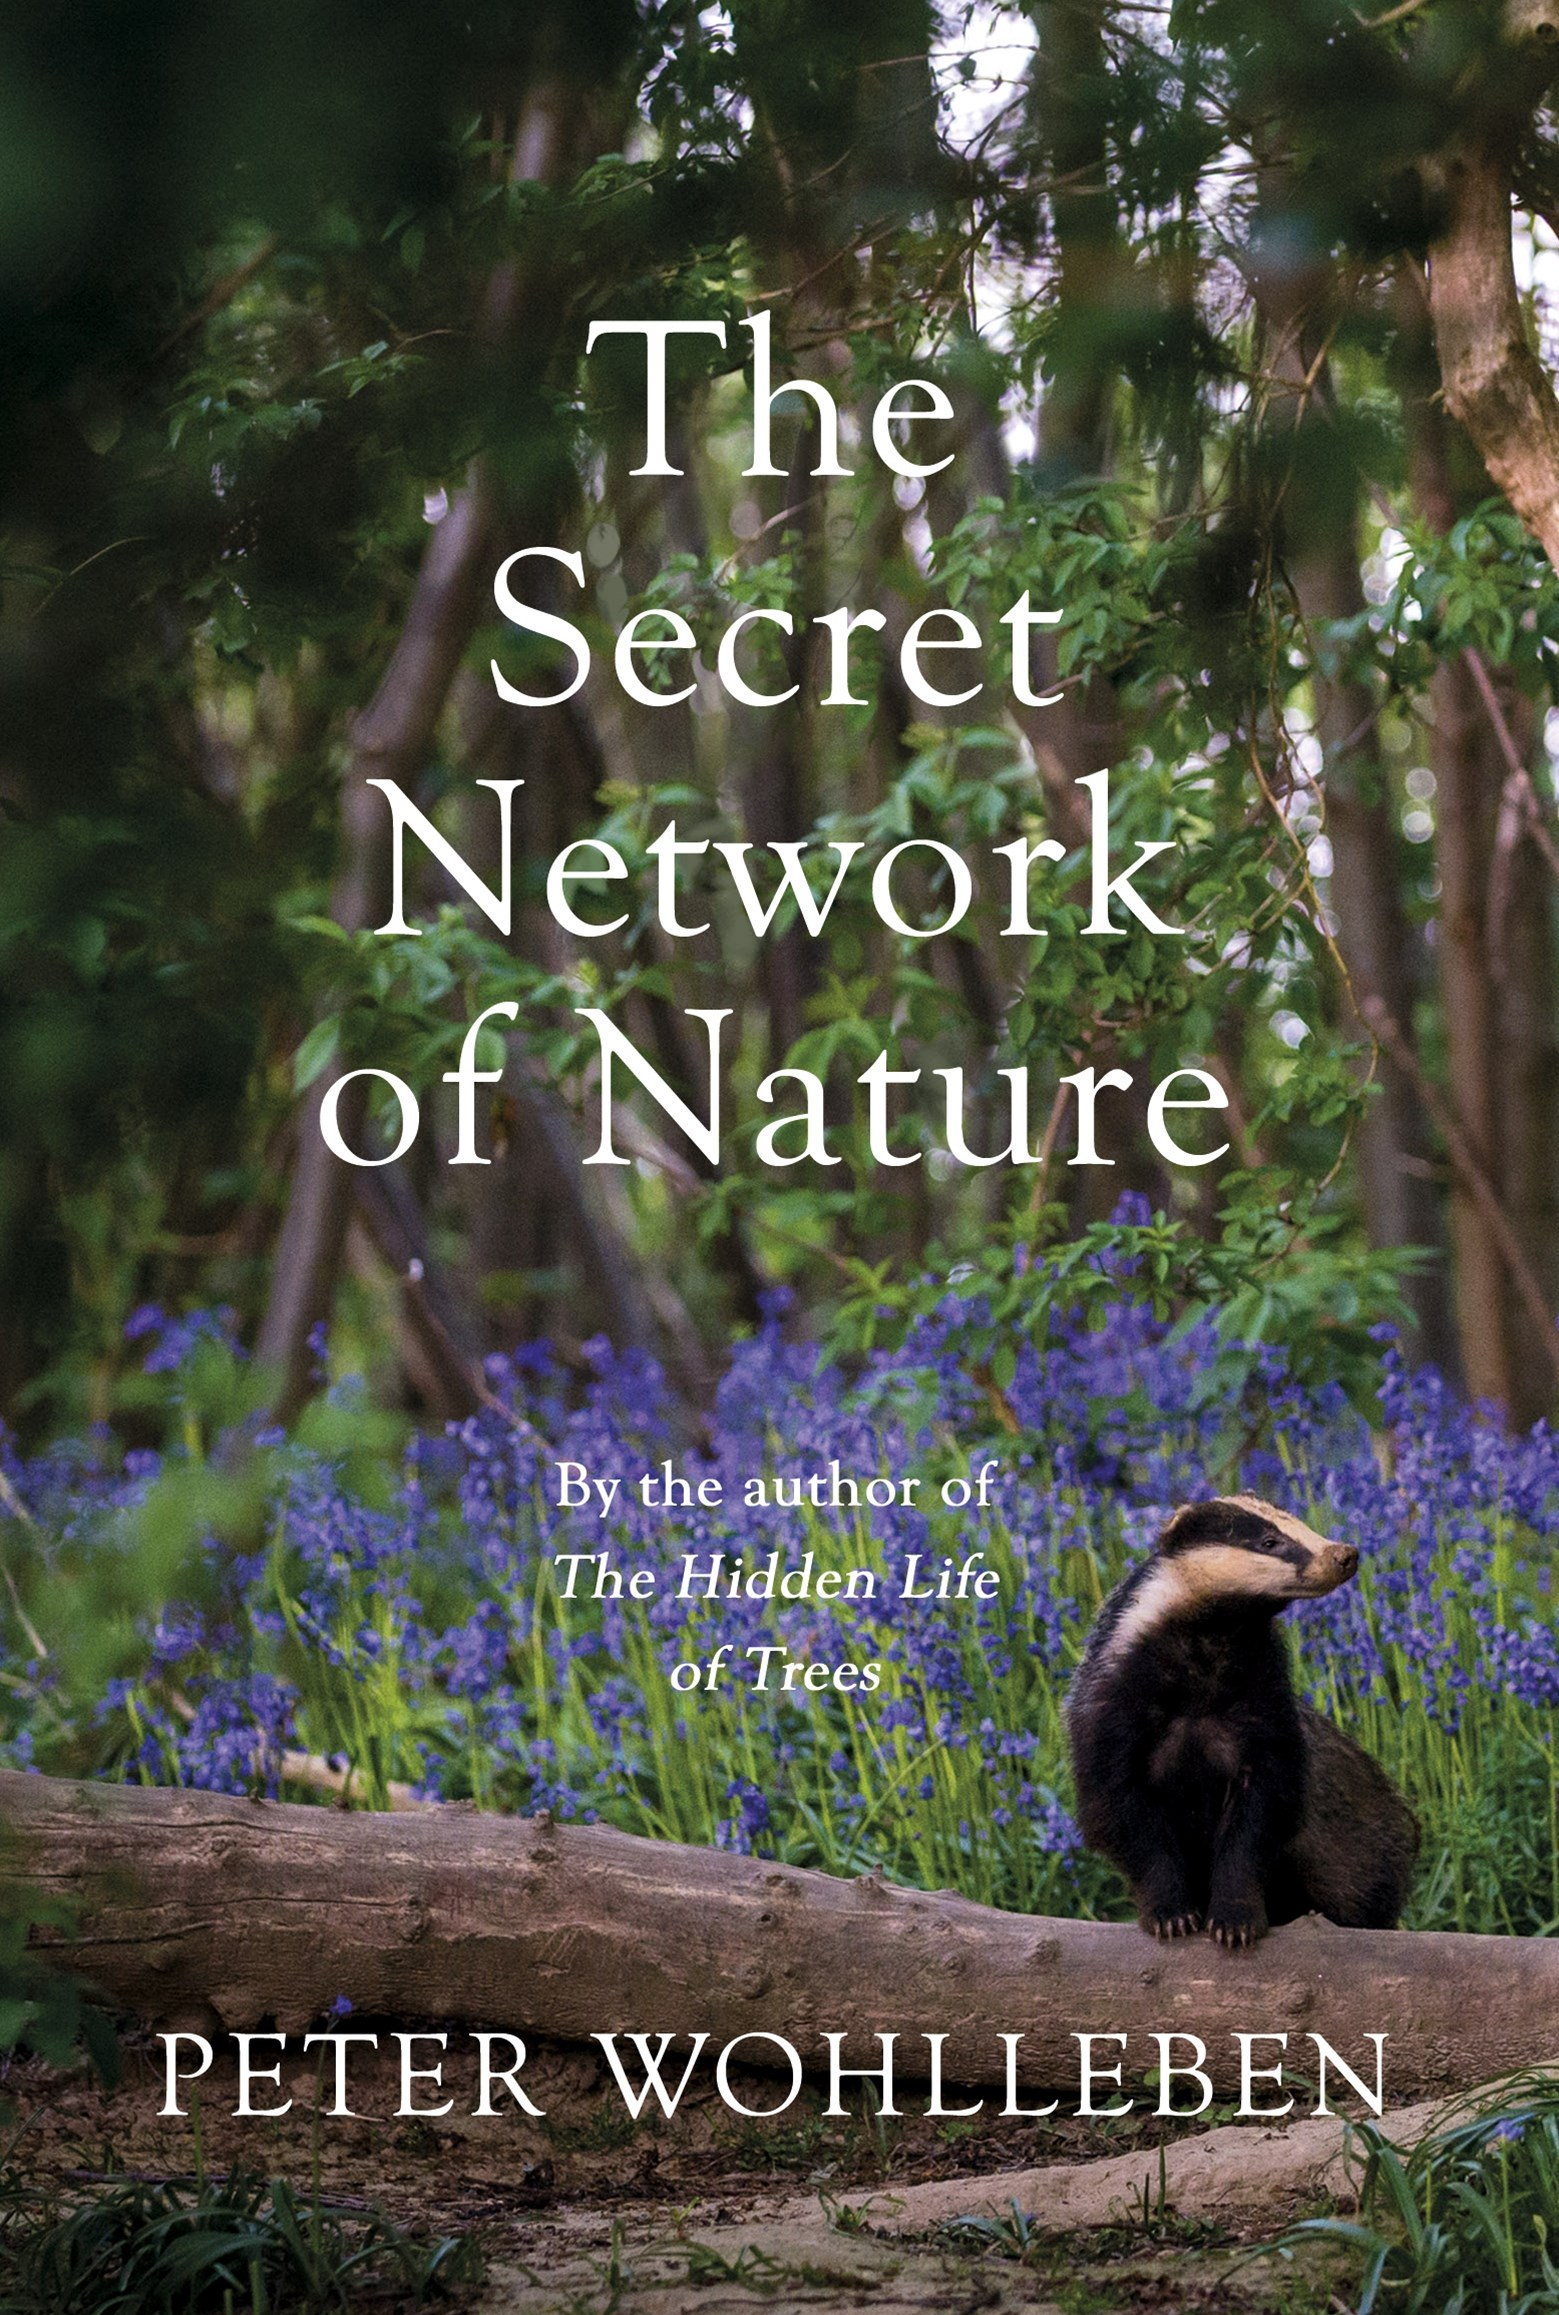 The Secret Network of Nature